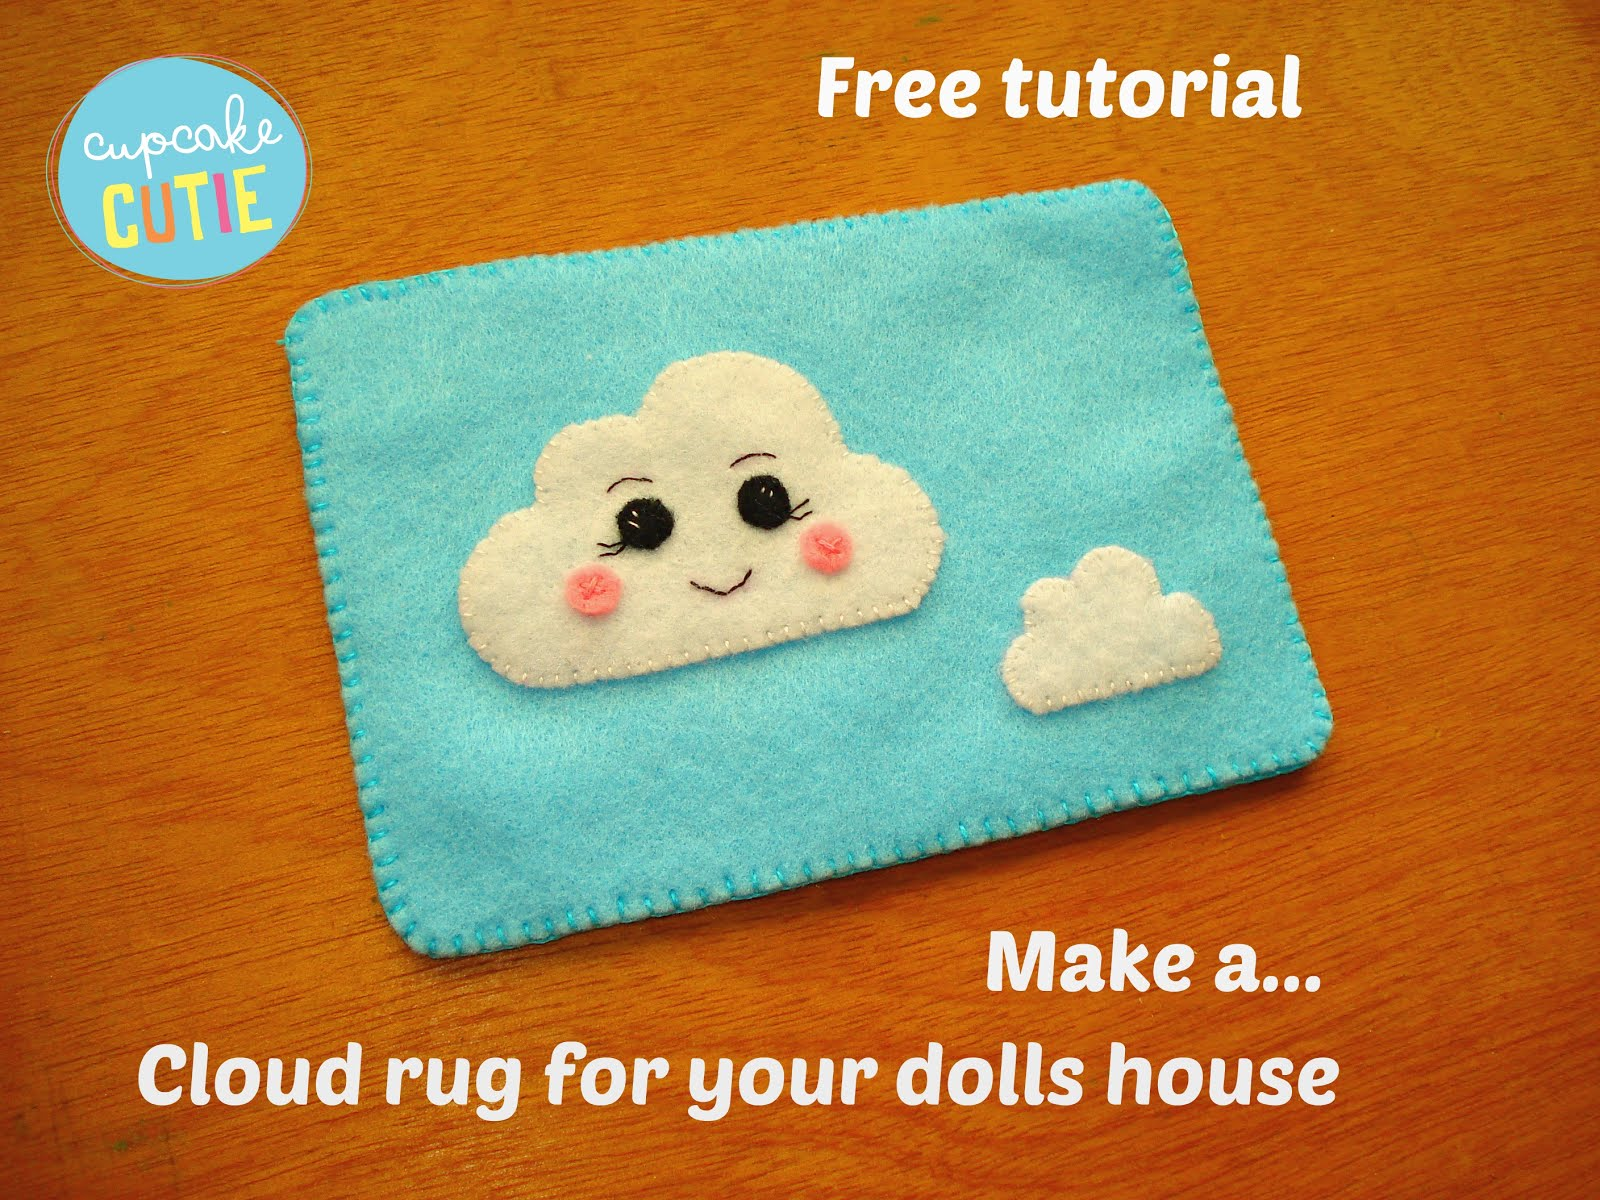 Free tutorial: Dolls house cloud rug